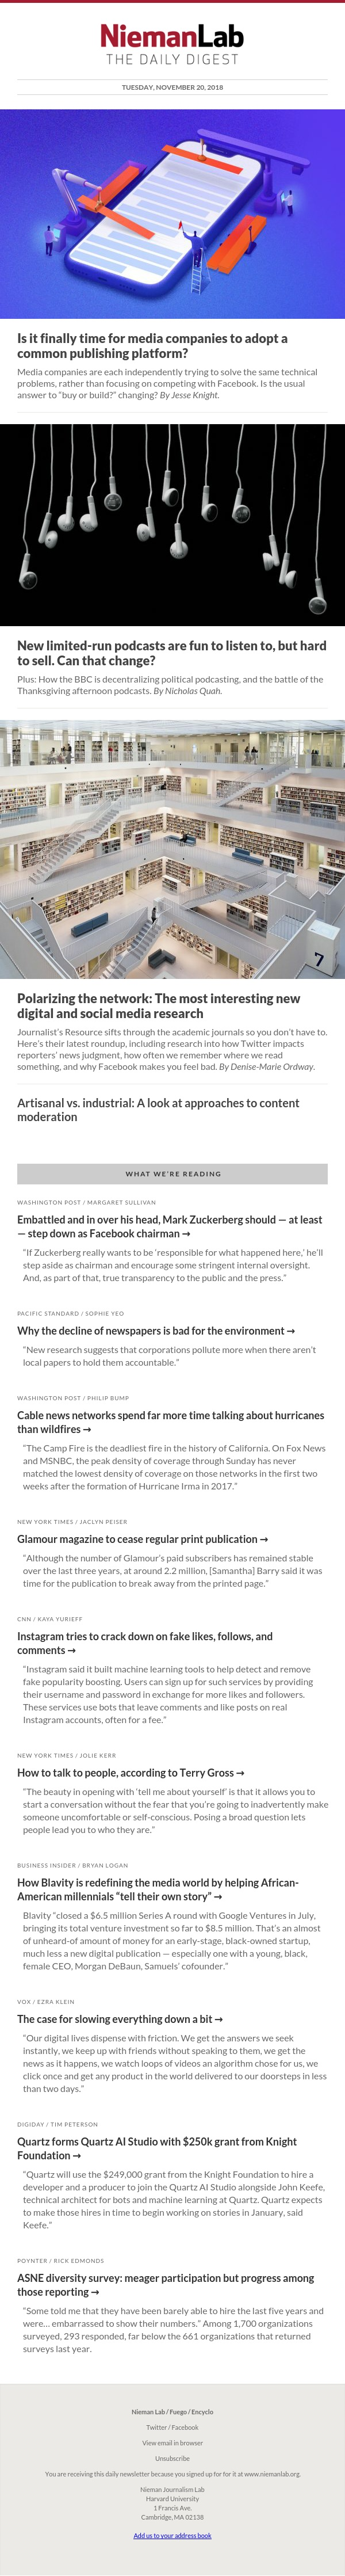 Is it finally time for media companies to adopt a common publishing platform?: The latest from Nieman Lab